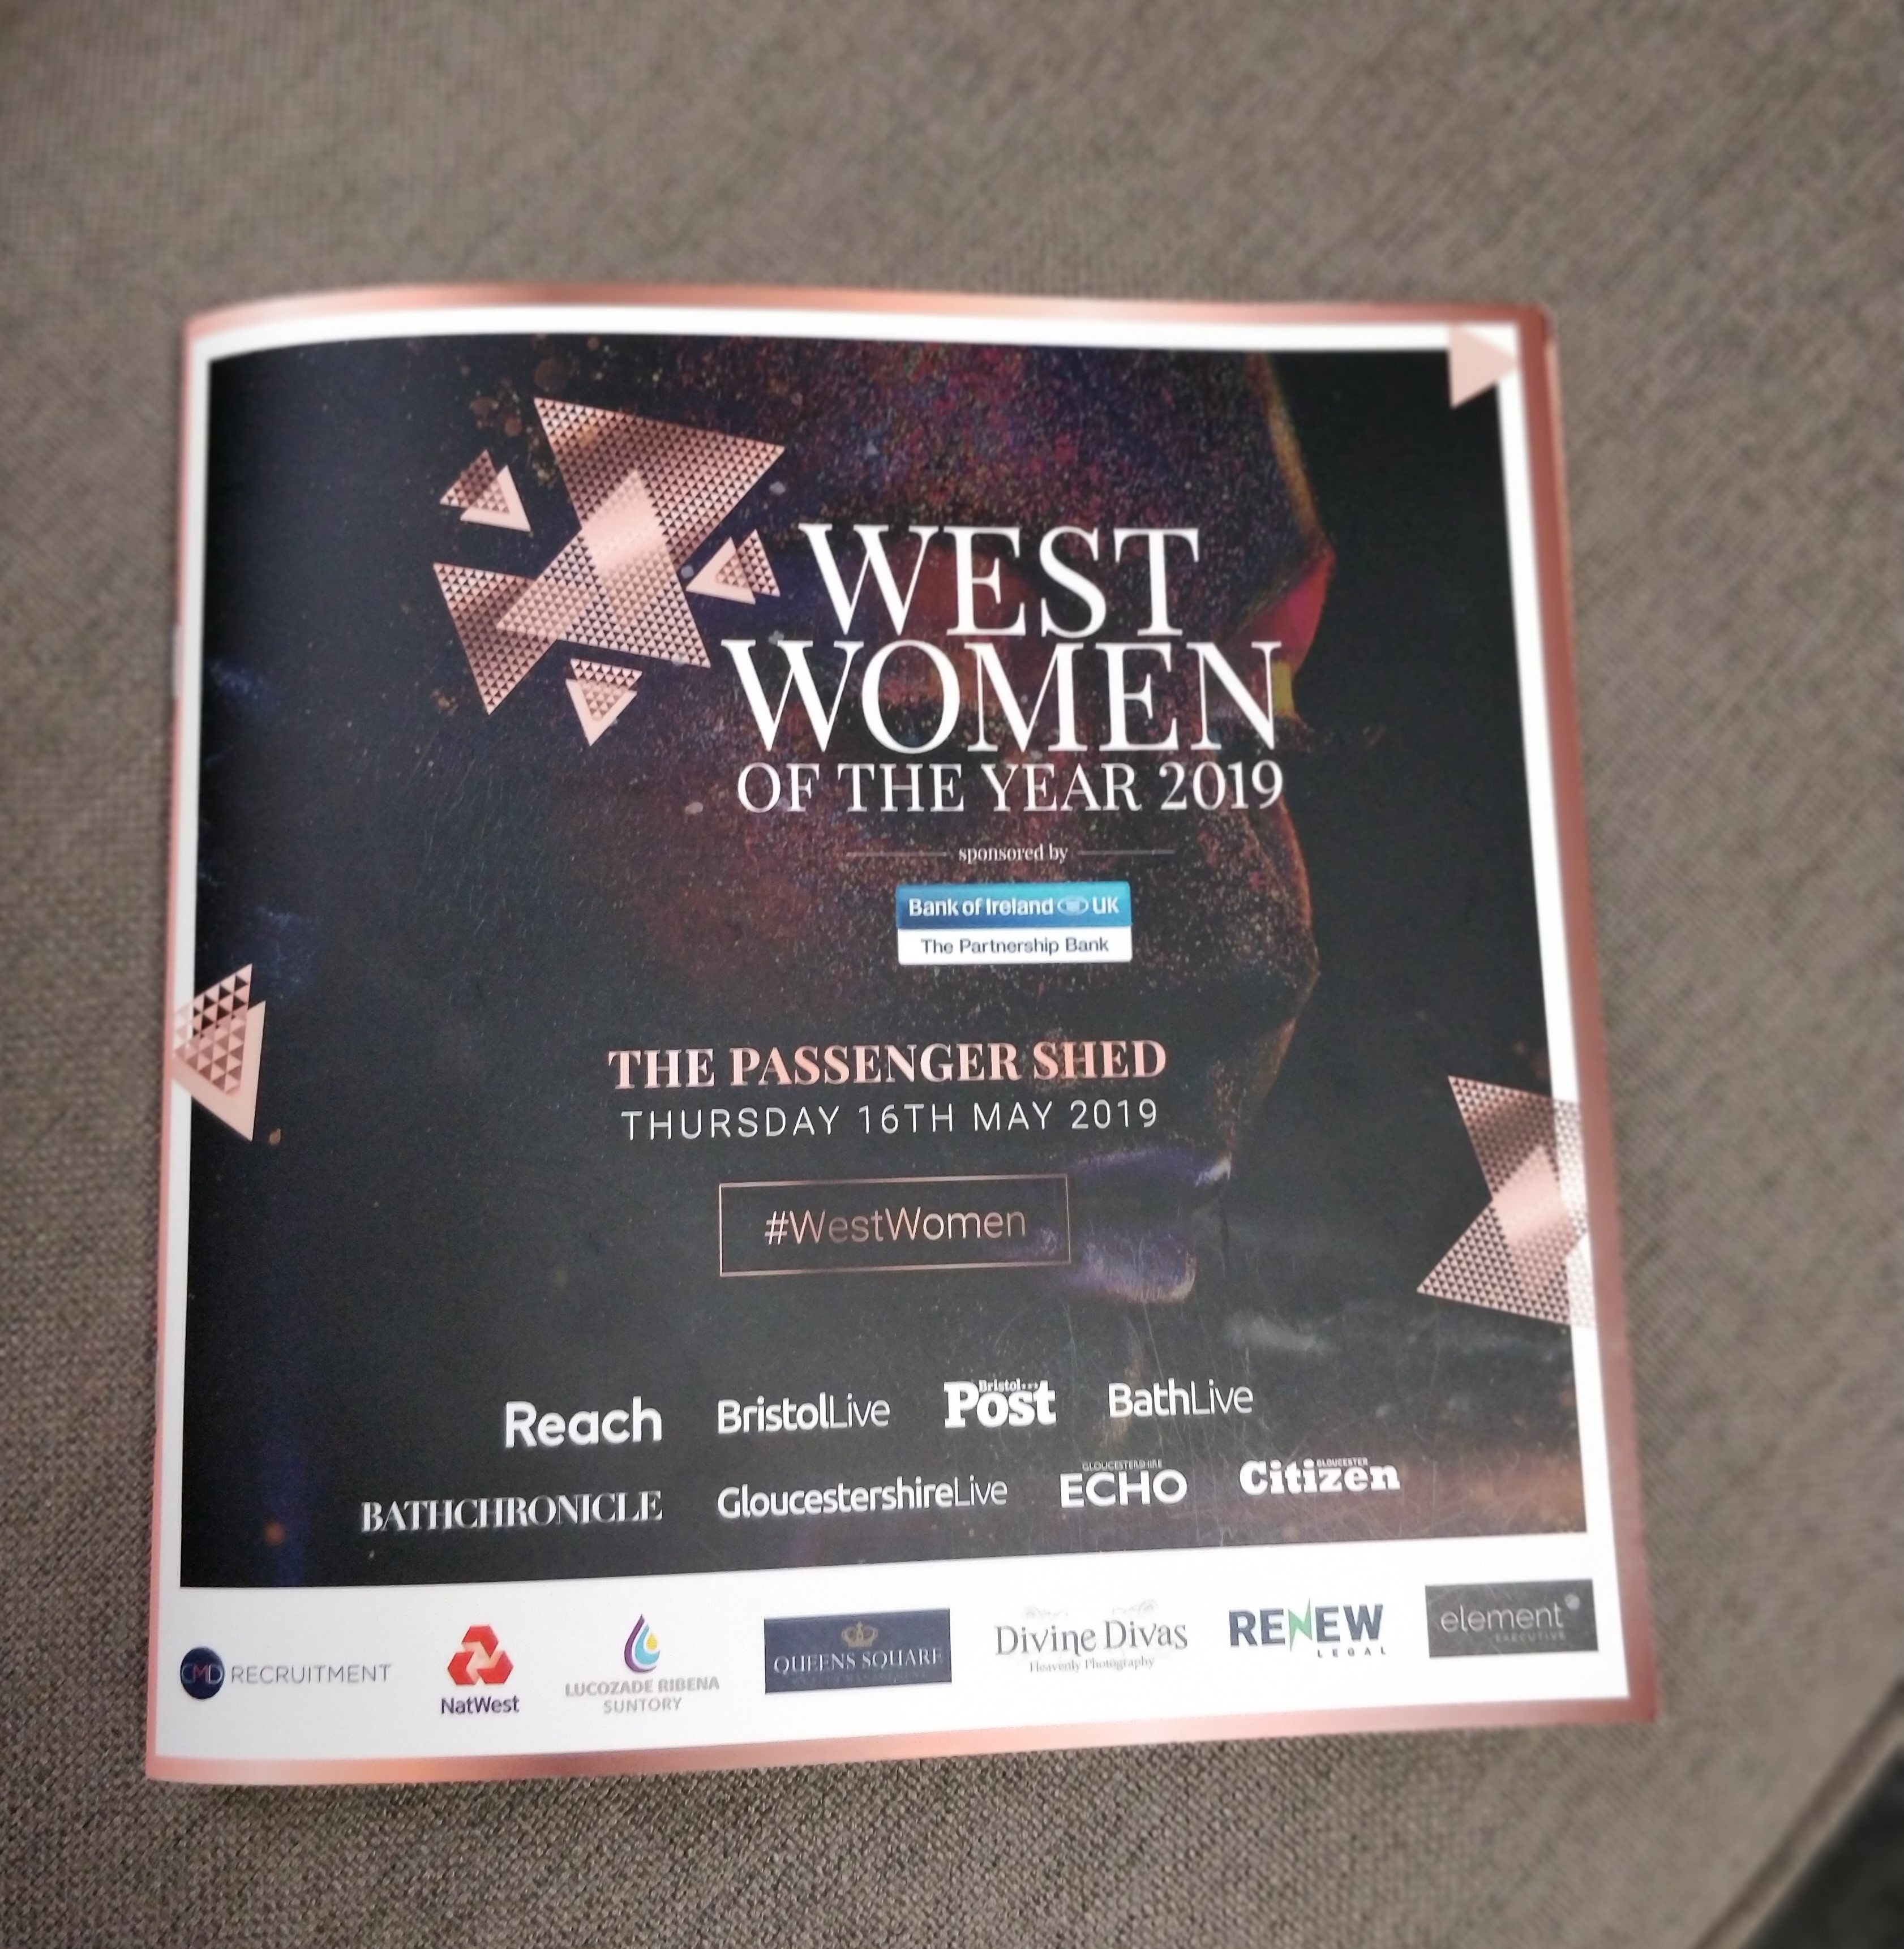 West Women of the year 2019